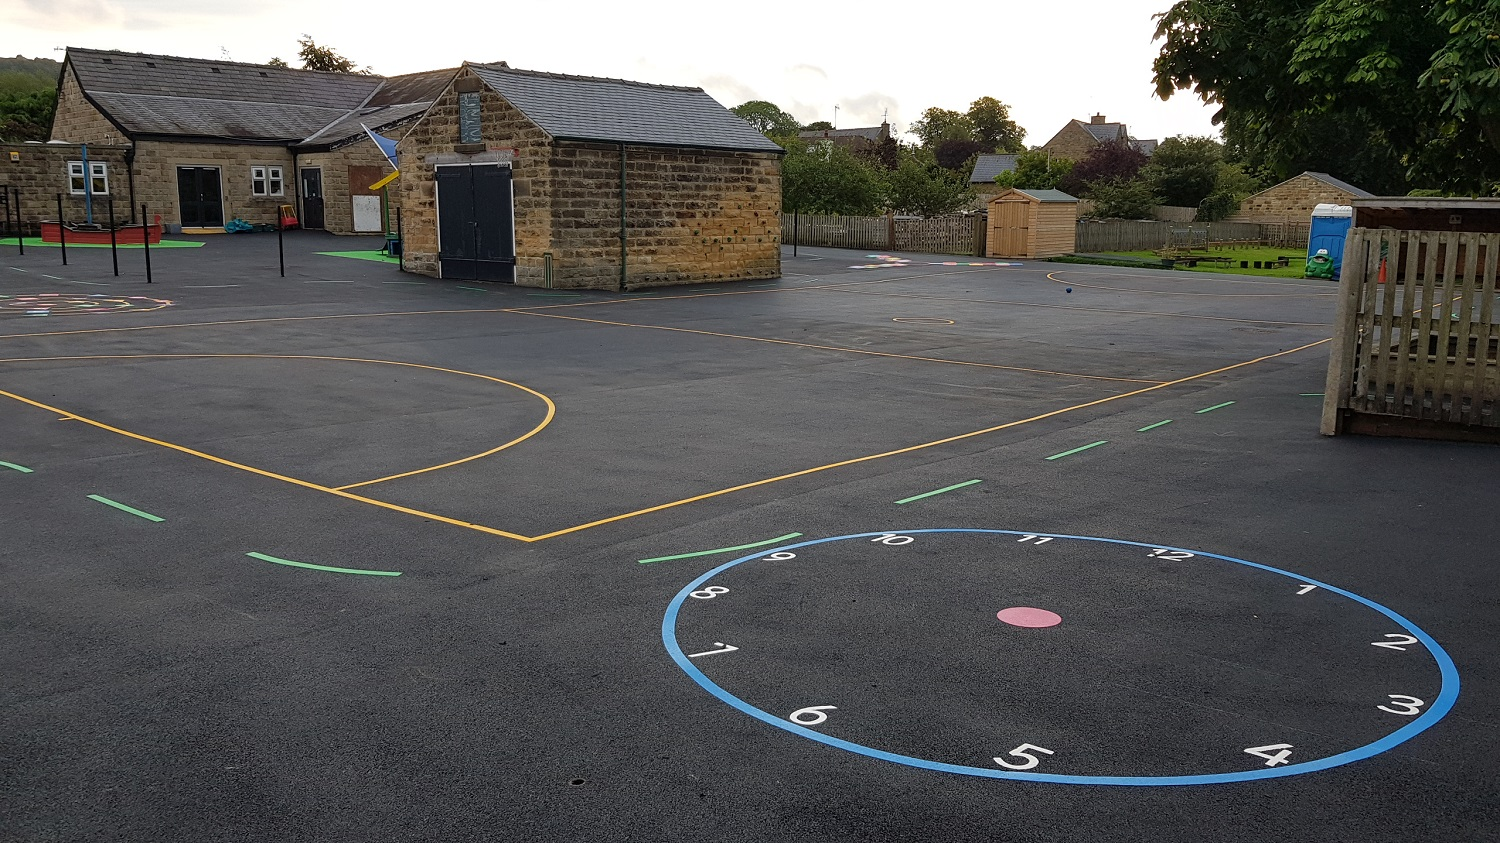 P25 Playground Tarmac Surfacing & Playground Markings at Ashover Primary School in Ashover